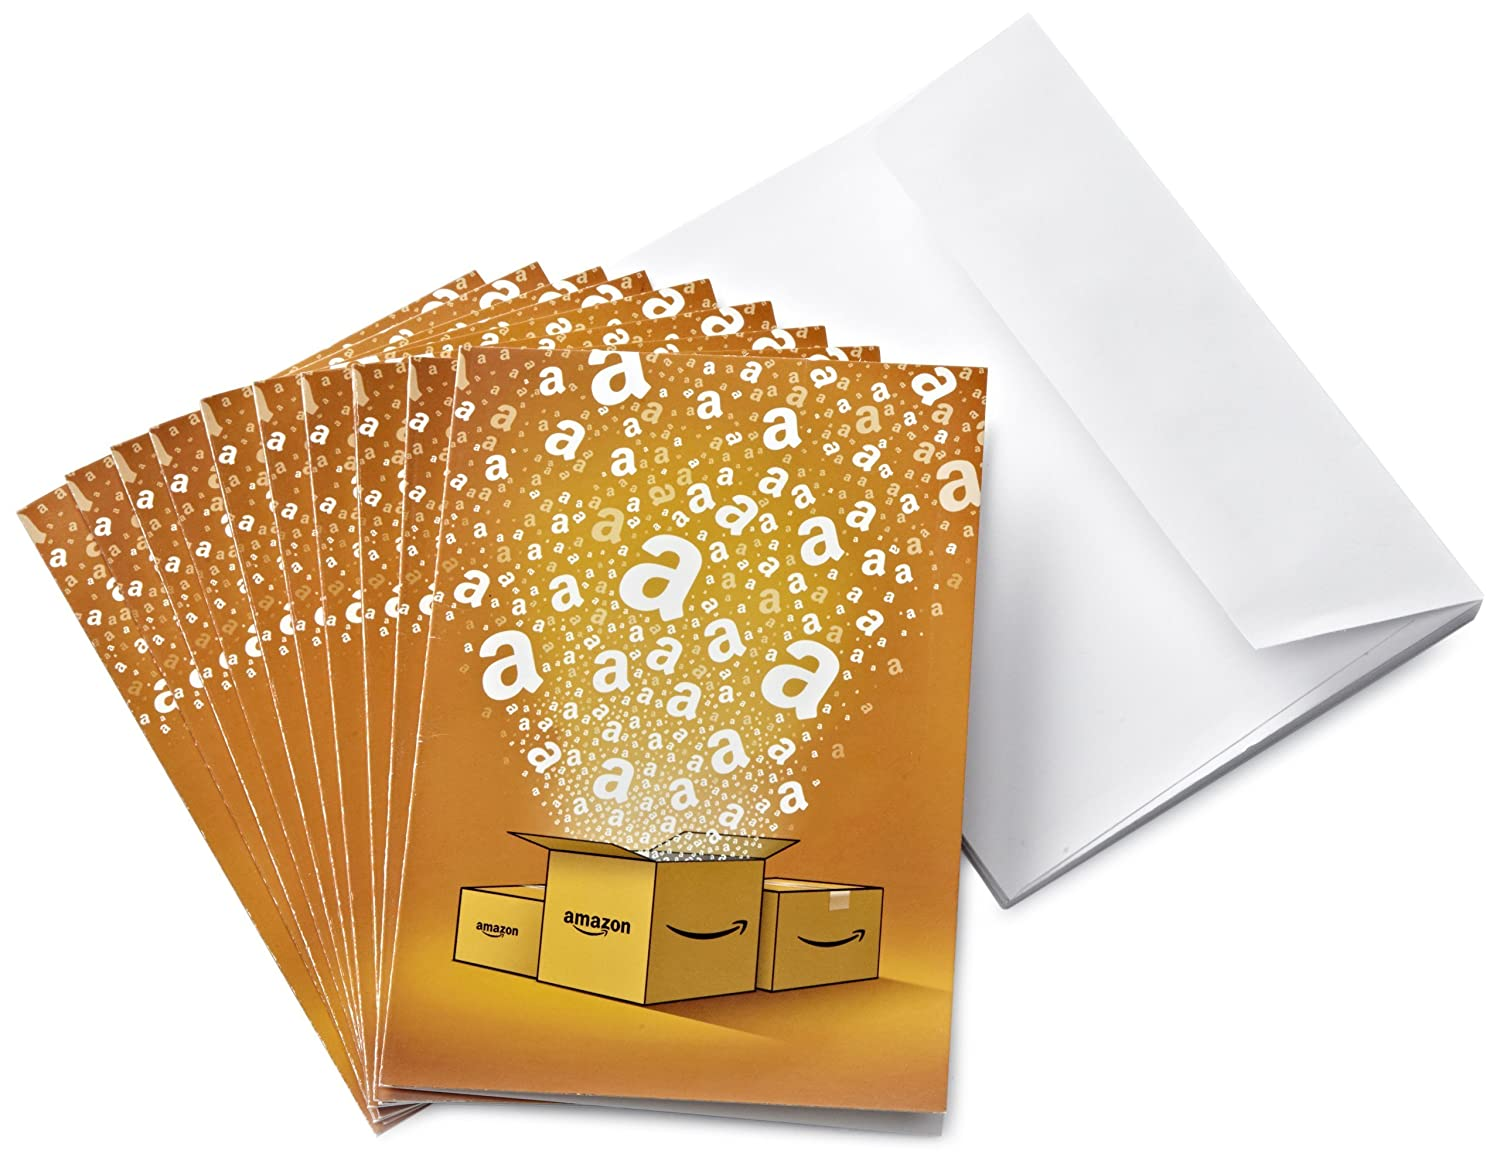 Amazon.co.uk Gift Cards - 10-Pack Greeting Cards - FREE One-Day Delivery Amazon EU S.à.r.l.